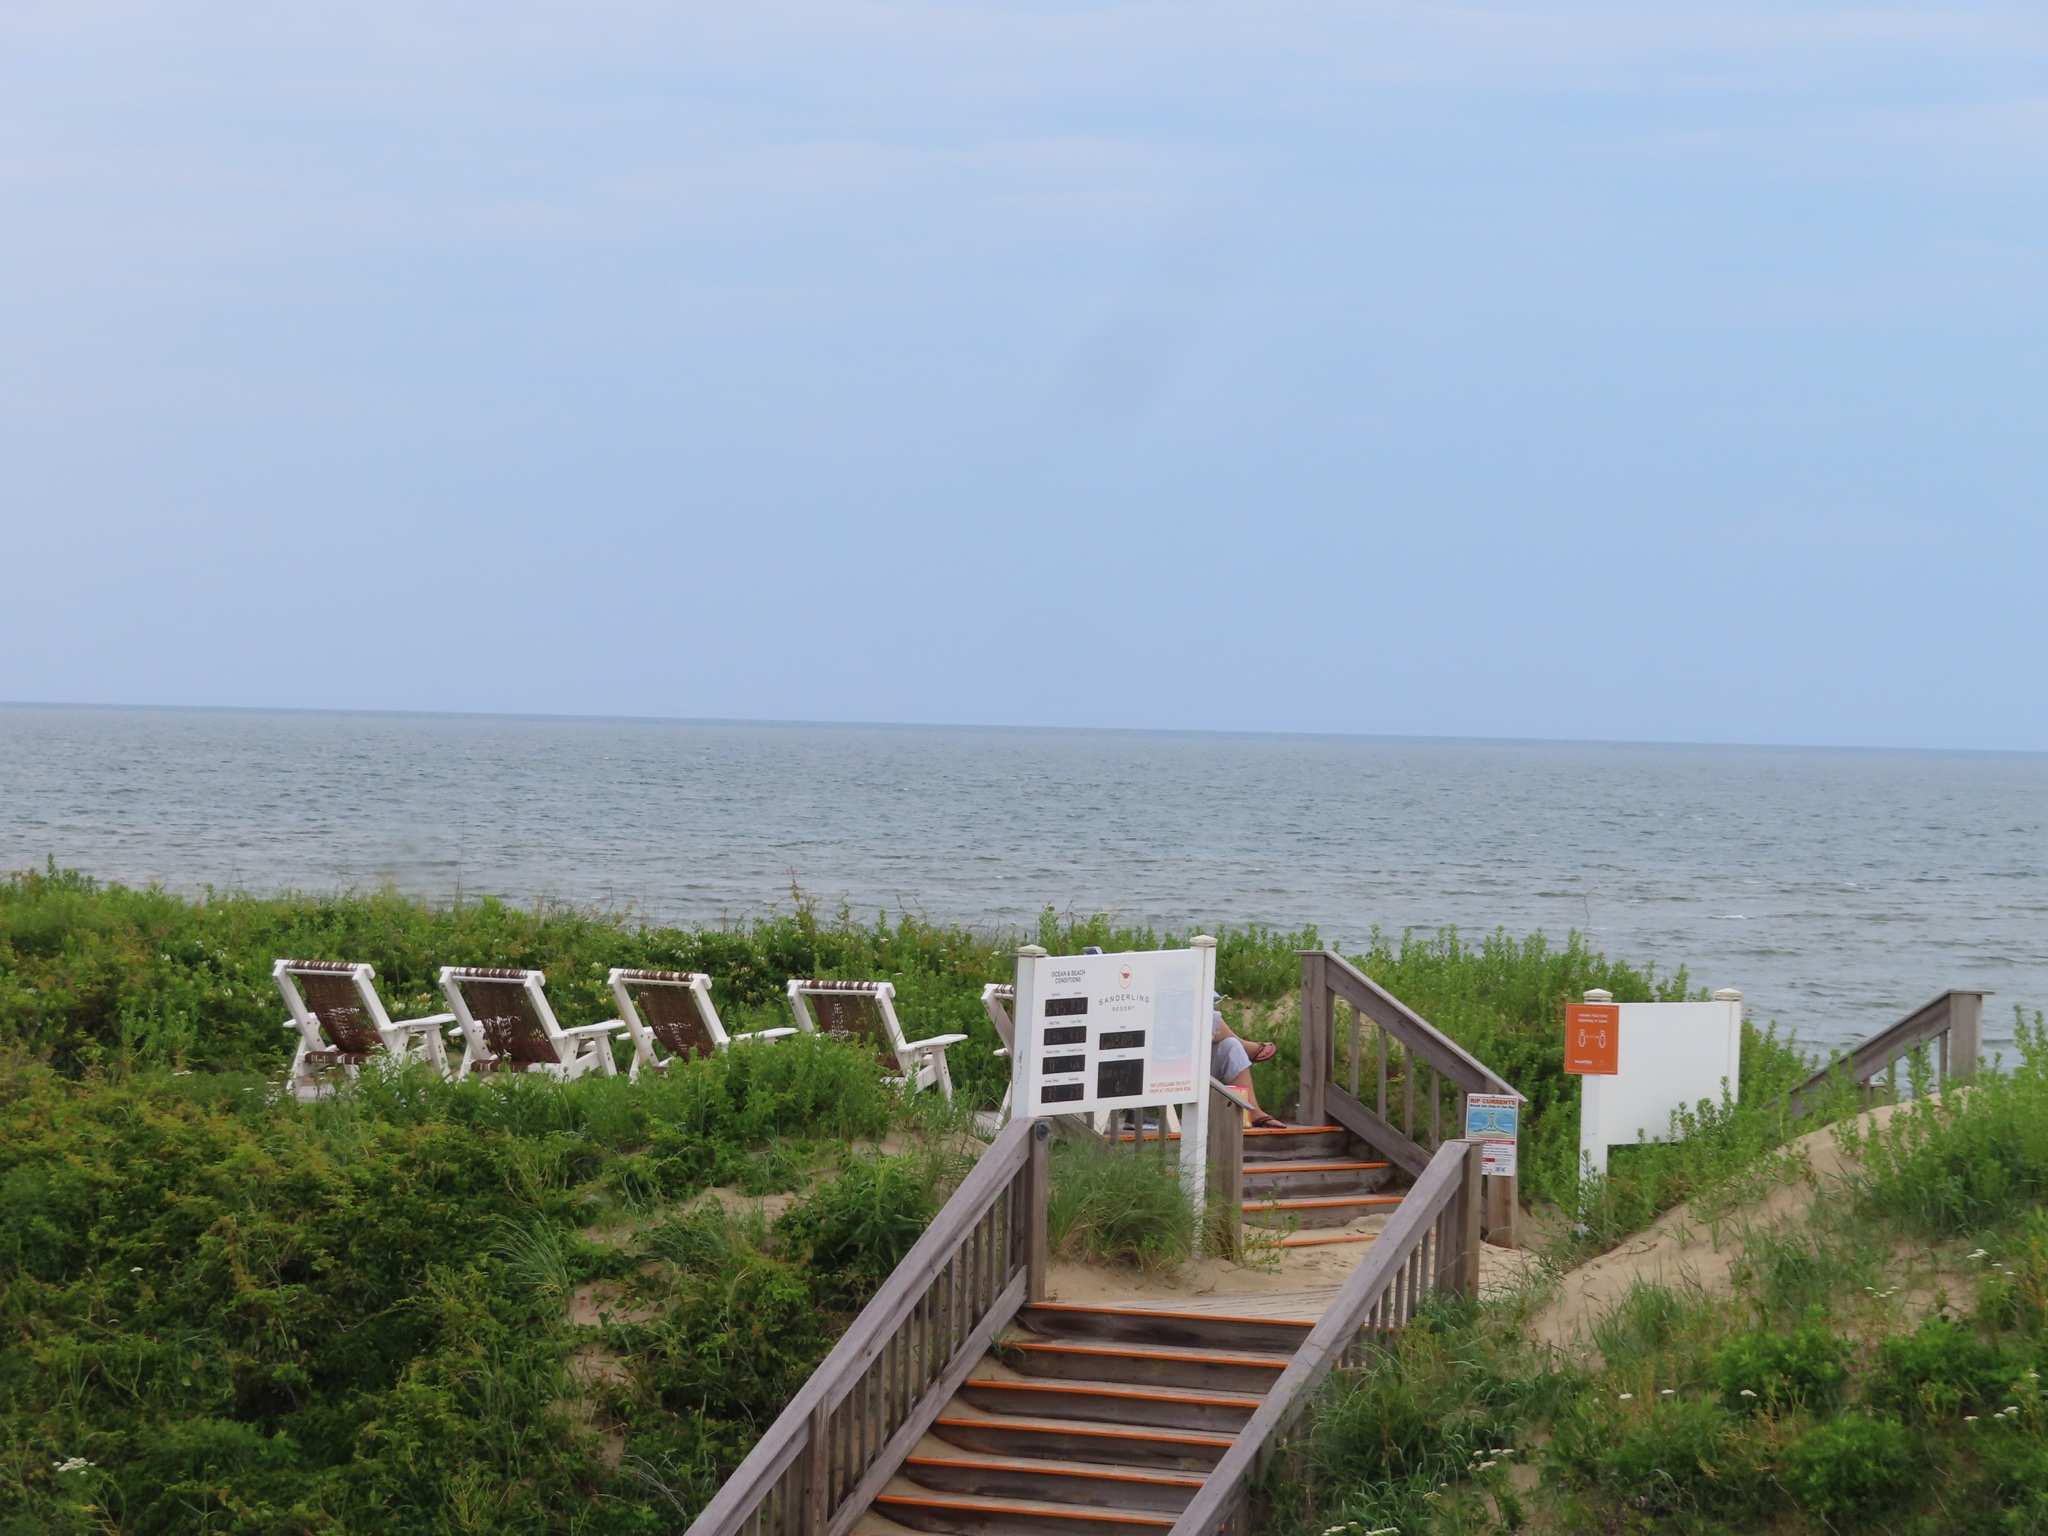 Road Trip Through Charming Towns in The Outer Banks